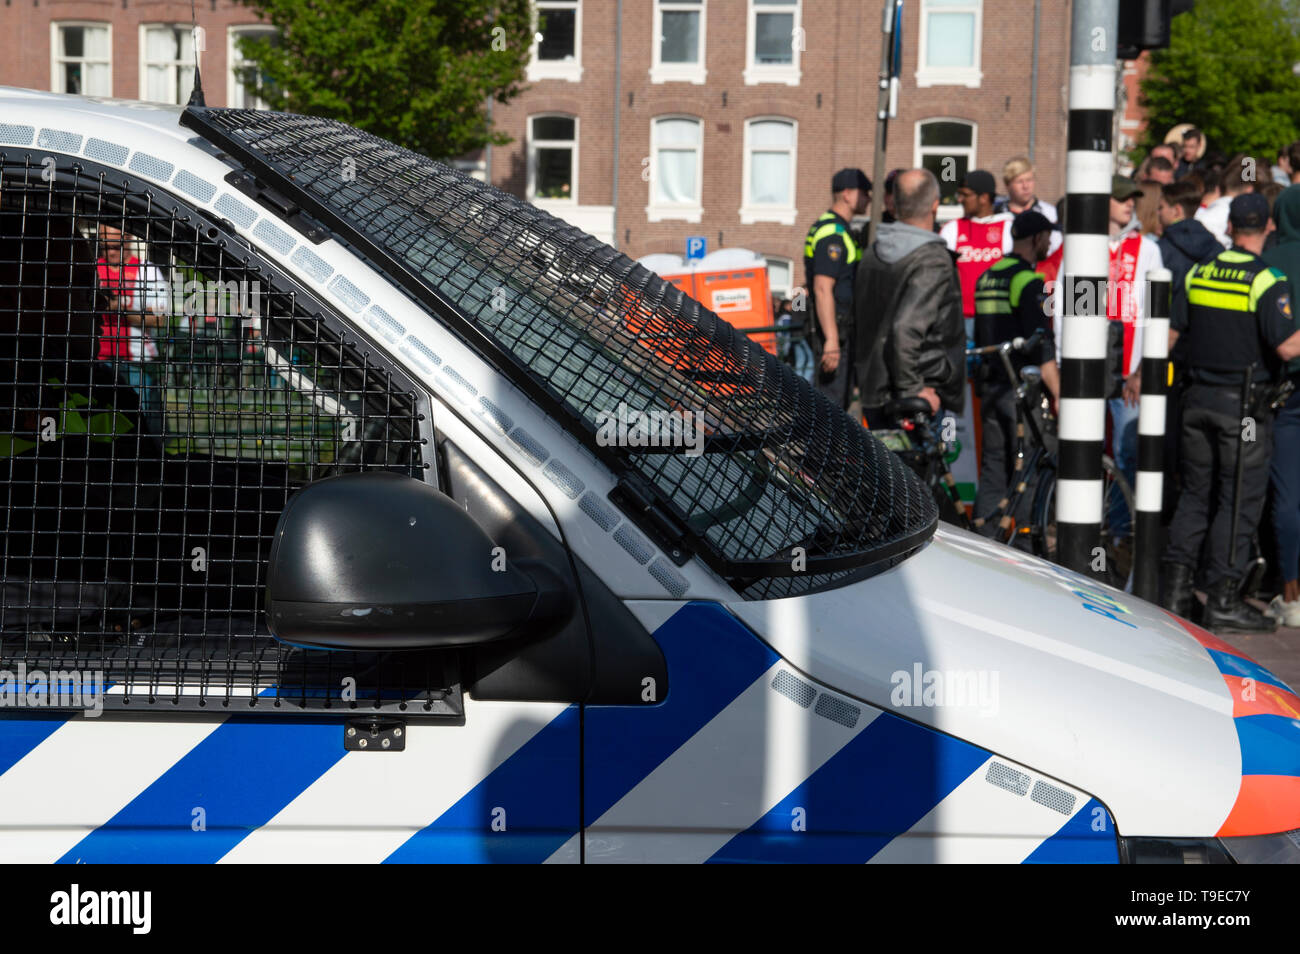 Police Working Around The Museumplein Ajax Dutch Champion Party Amsterdam The Netherlands 2019 - Stock Image